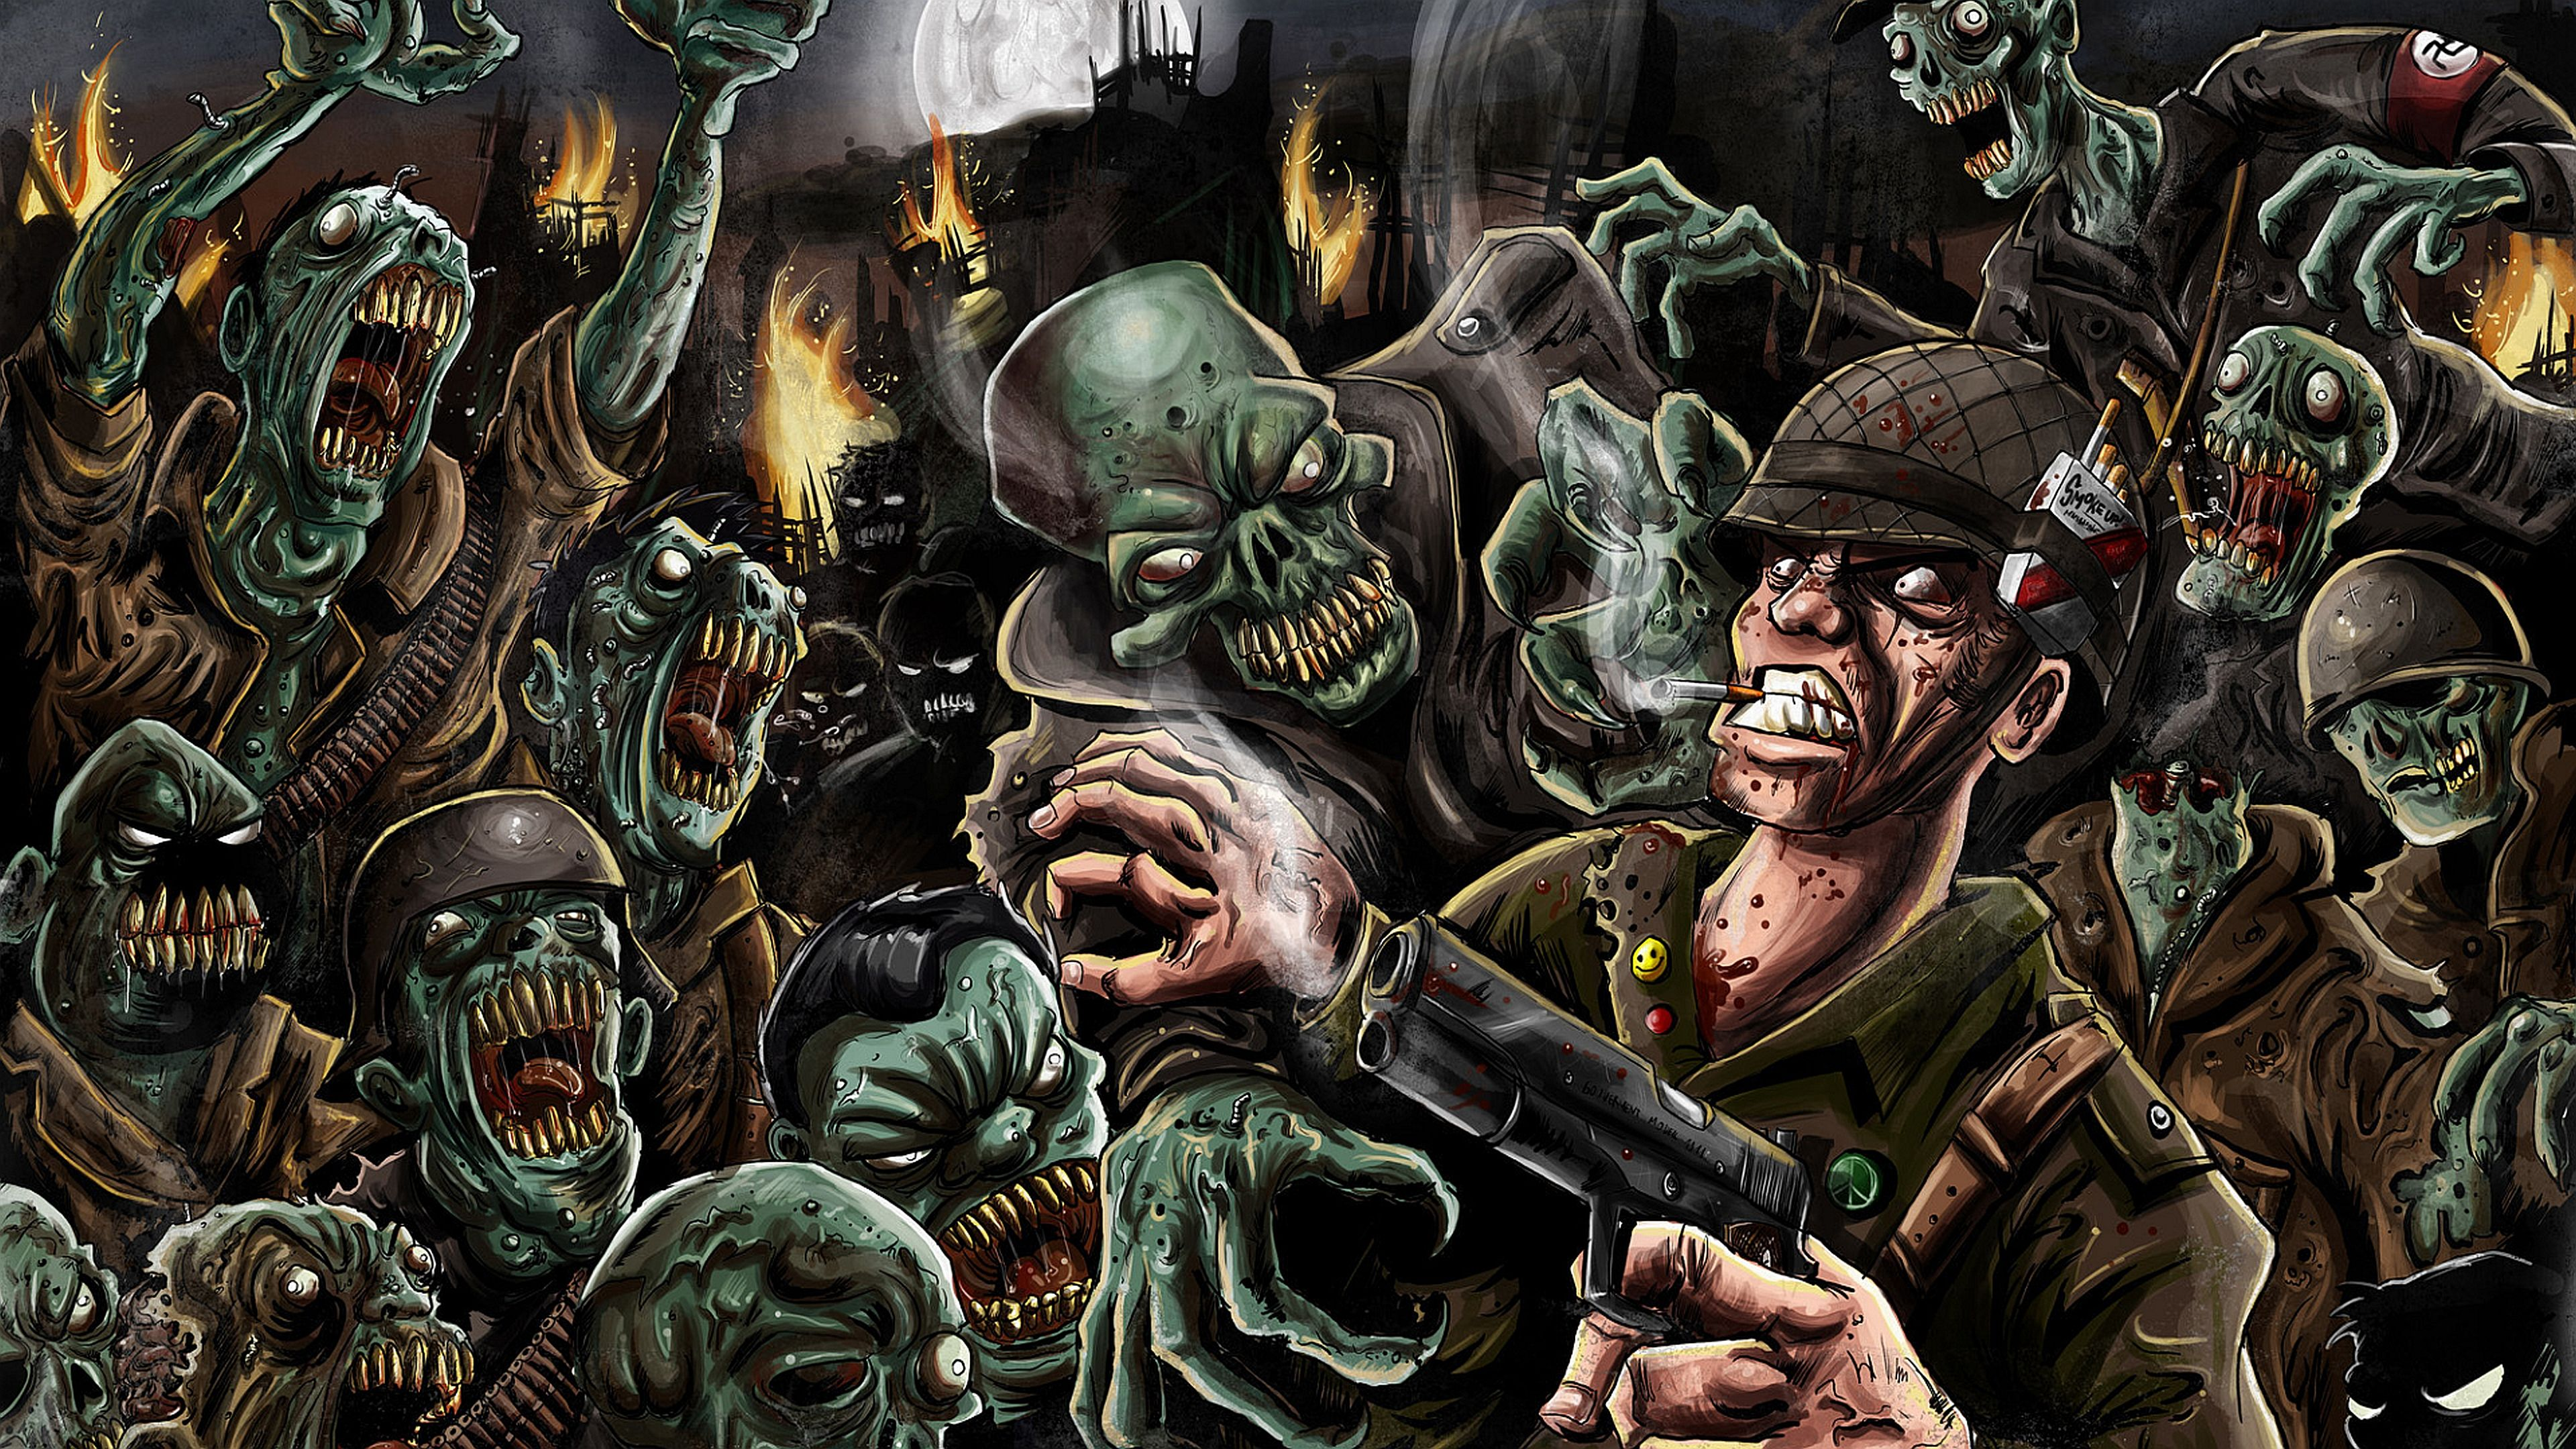 Dark Zombie Wallpaper Zombie Wallpaper Zombie Cartoon Zombie